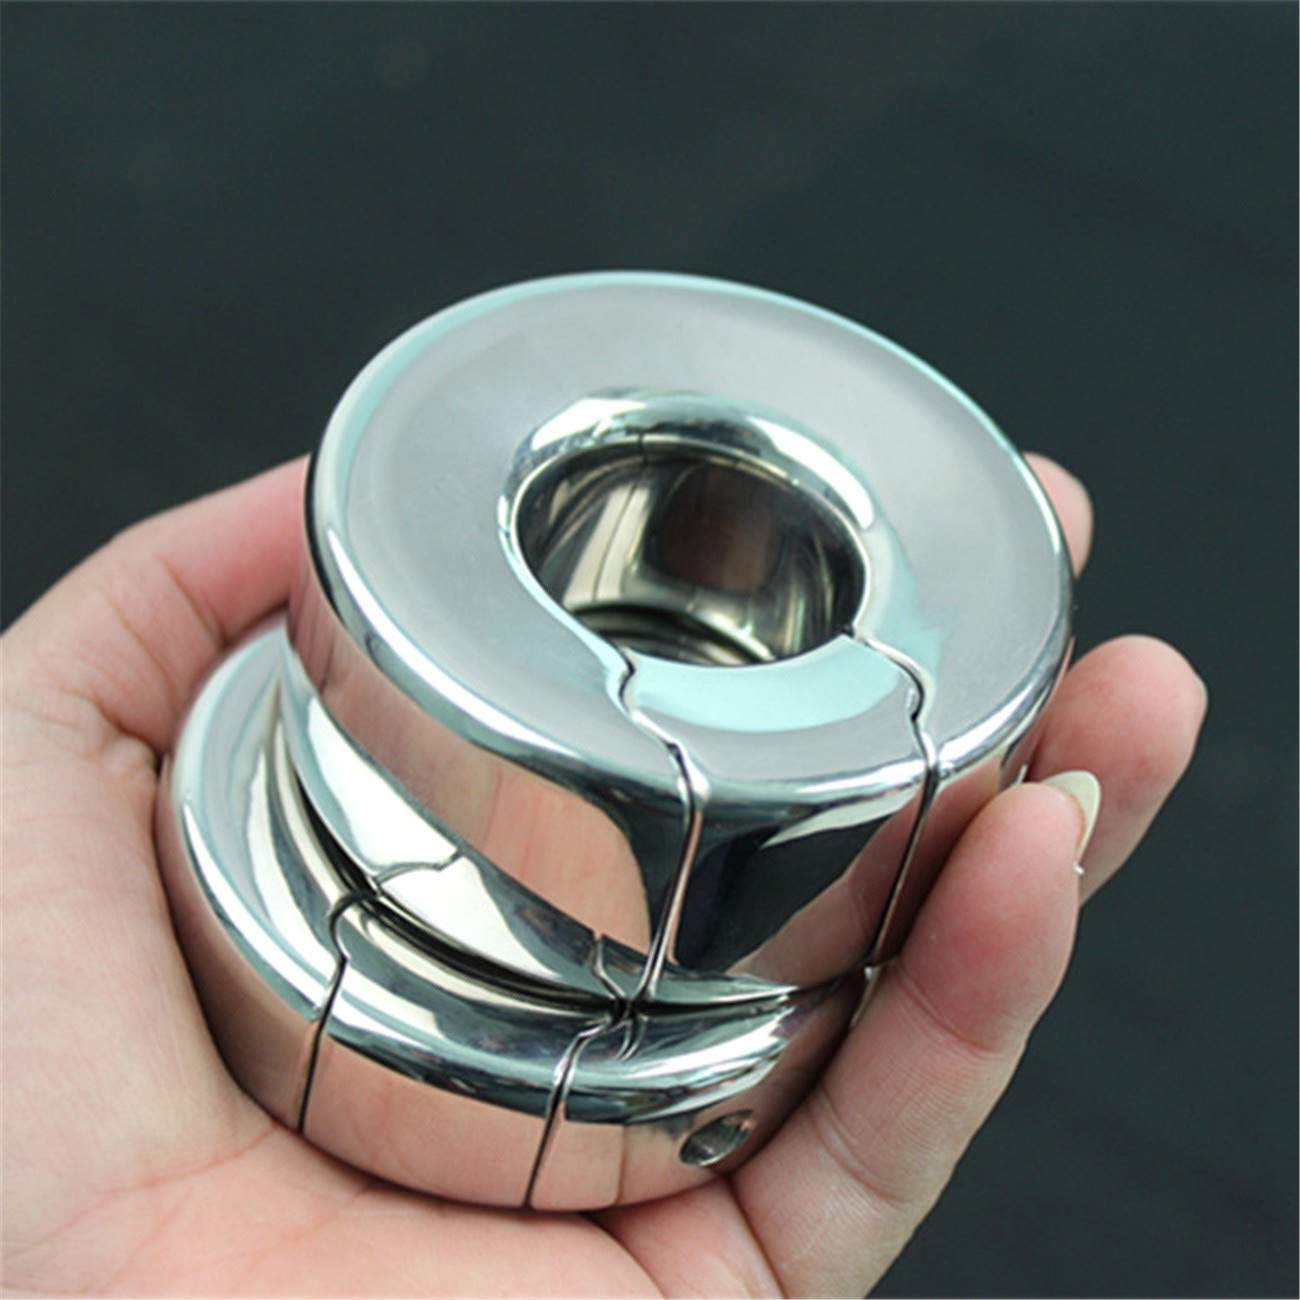 Heavy Loop Masturbation Cup Magnetic Scrotum Bondage Penis Pendant Ring for Men Metal Ball Stretcher Scrotum Vibrator Sex Toys for Woman Pendant Restraint Ring B2-47 M Vibrator Cilt by Carlos Foushee (Image #2)